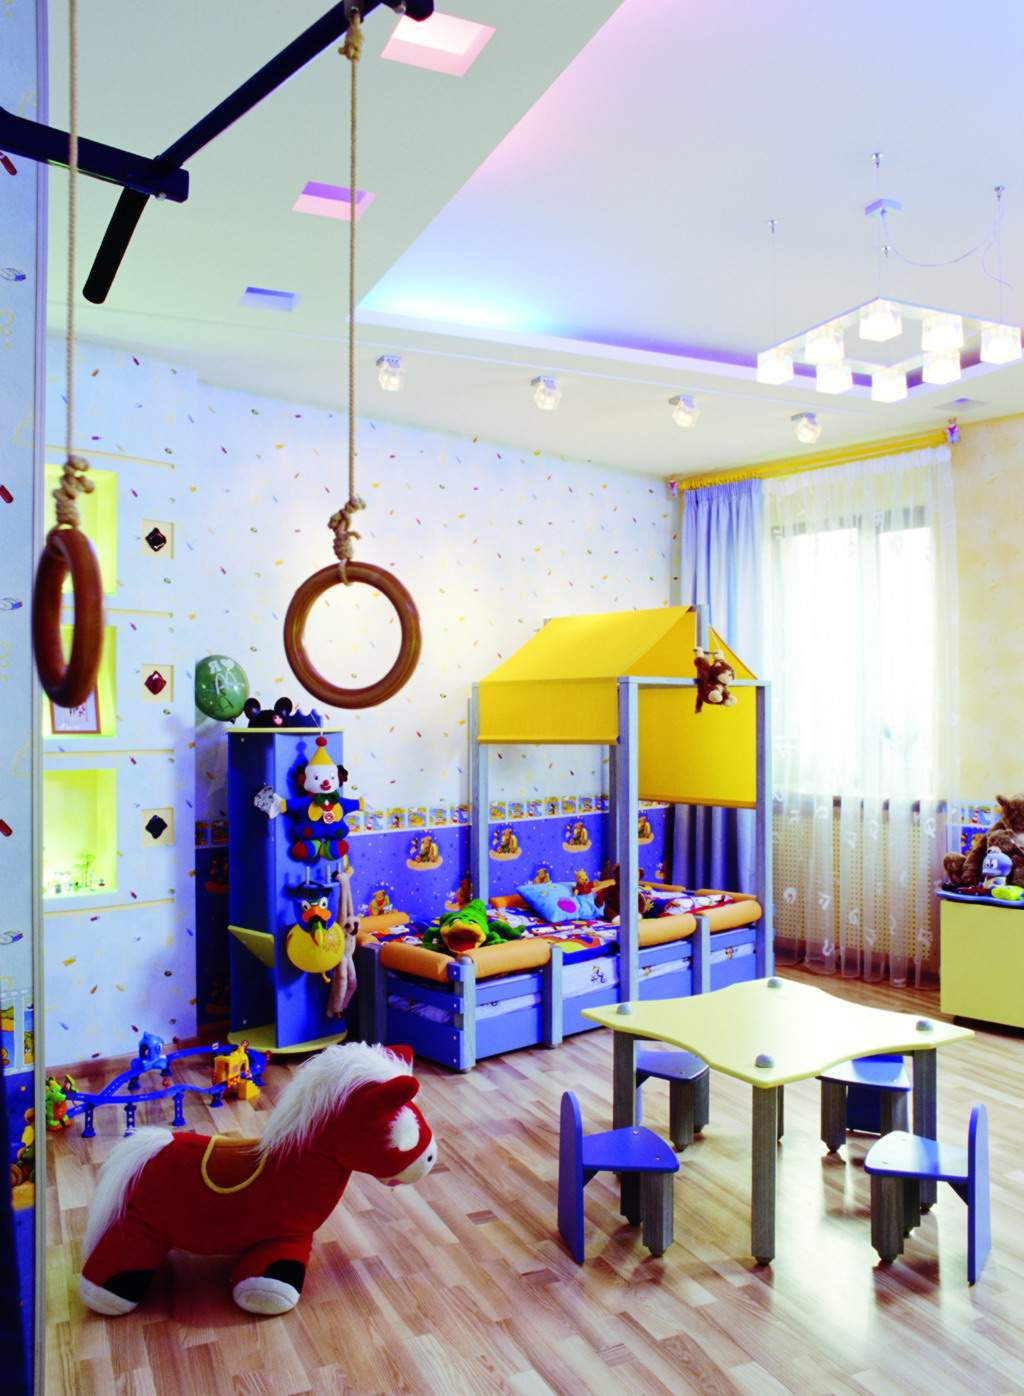 15 creative kids bedroom decorating ideas - Kids room decoration ...